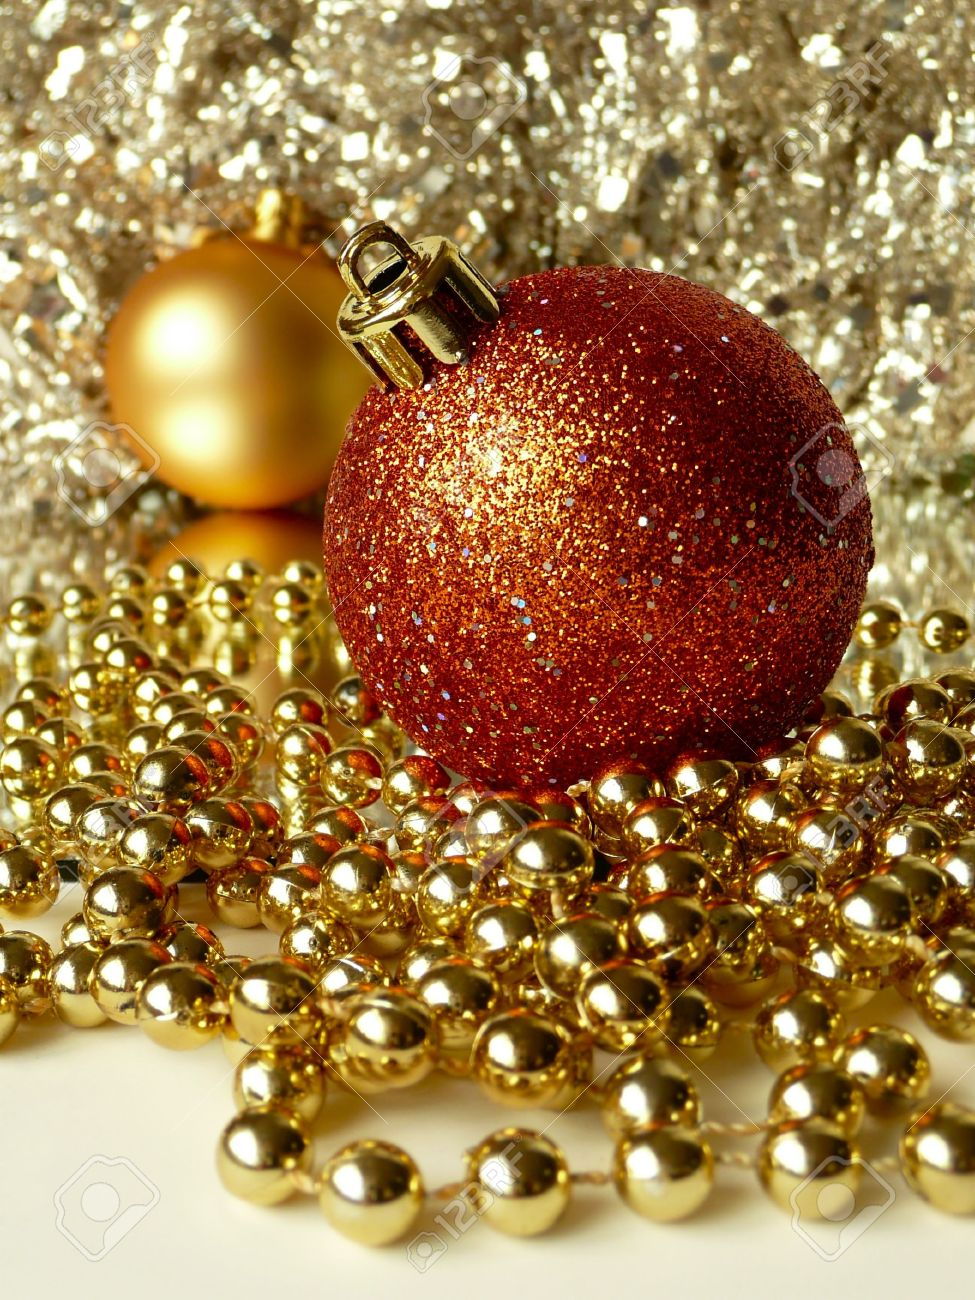 Red Gold Christmas Tree Balls Surrounded By Tinsel And Decorative